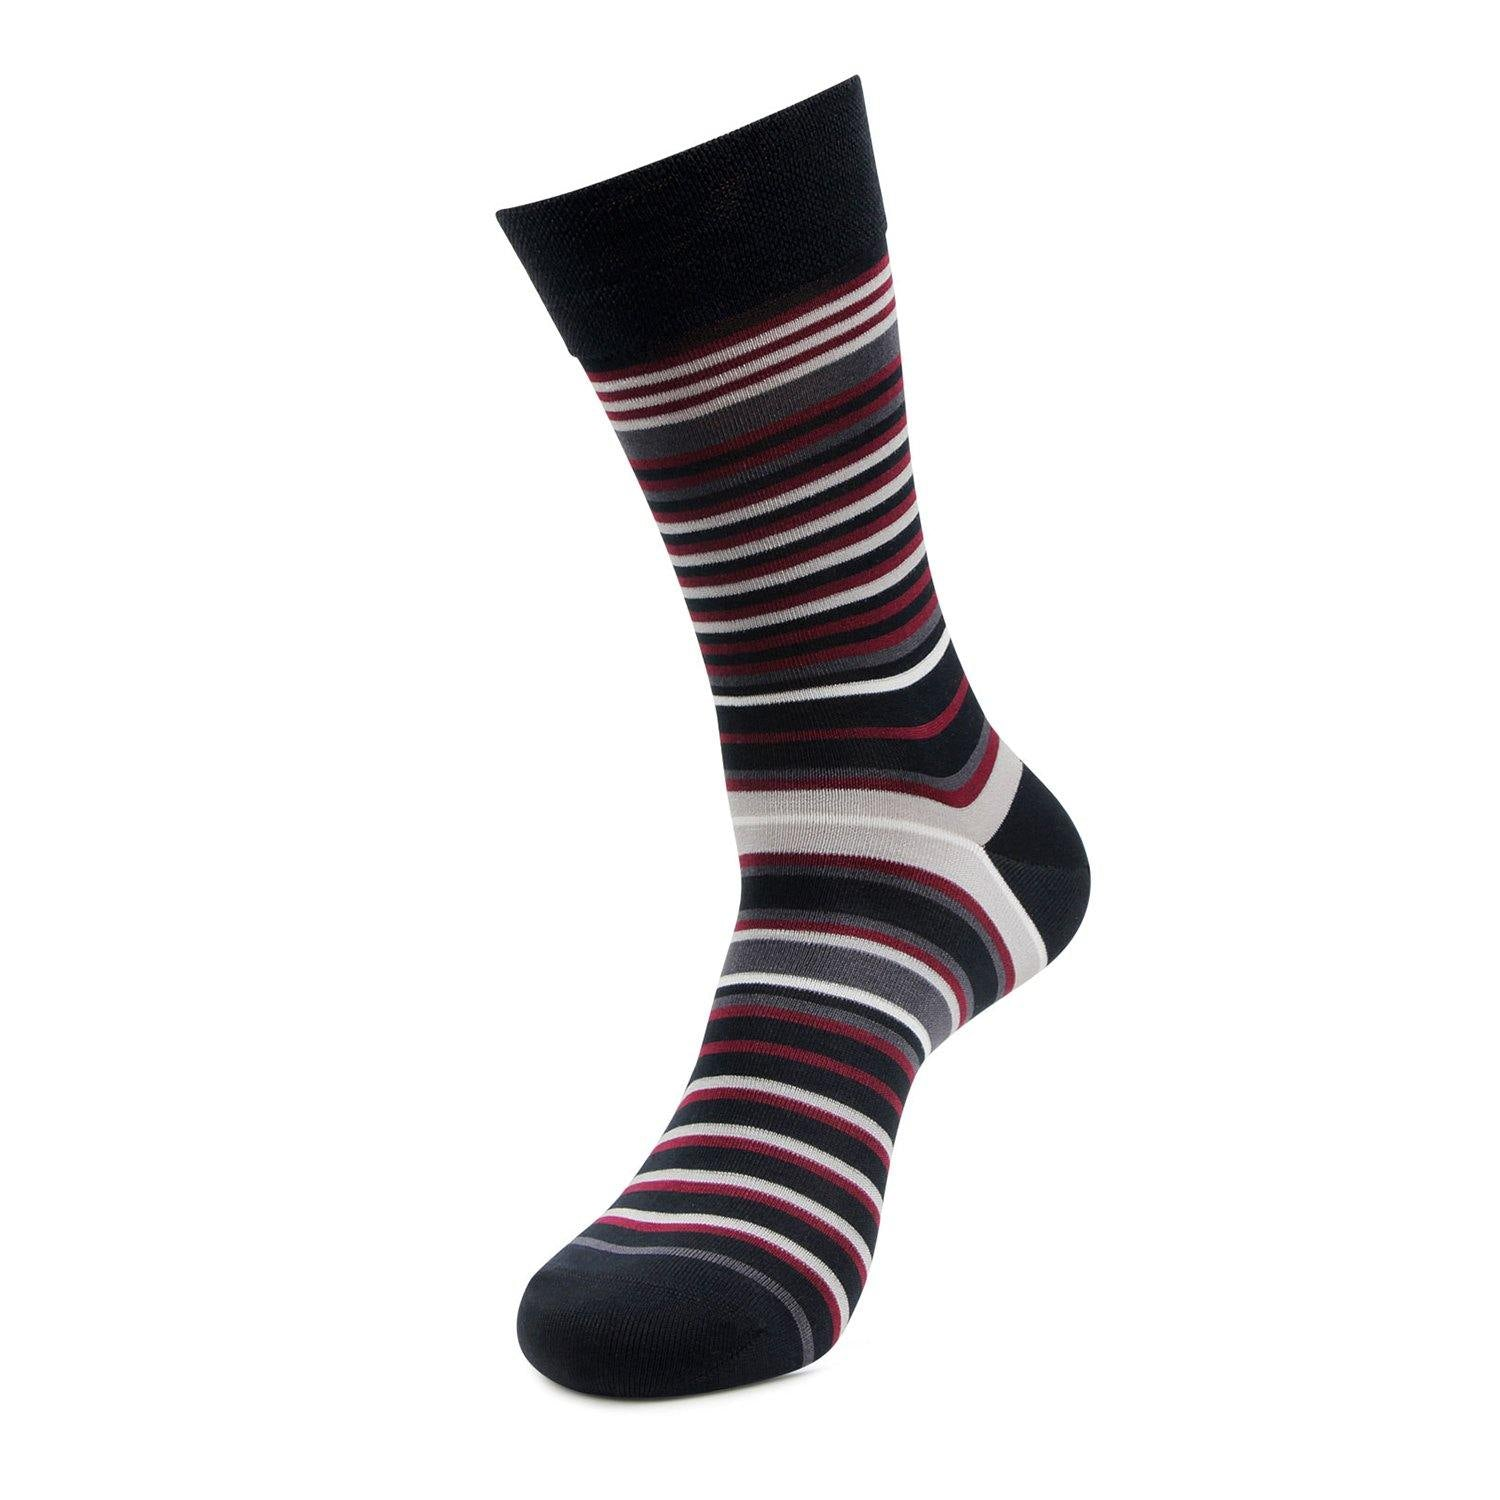 Formal Signature Collection Striped Pattern Socks